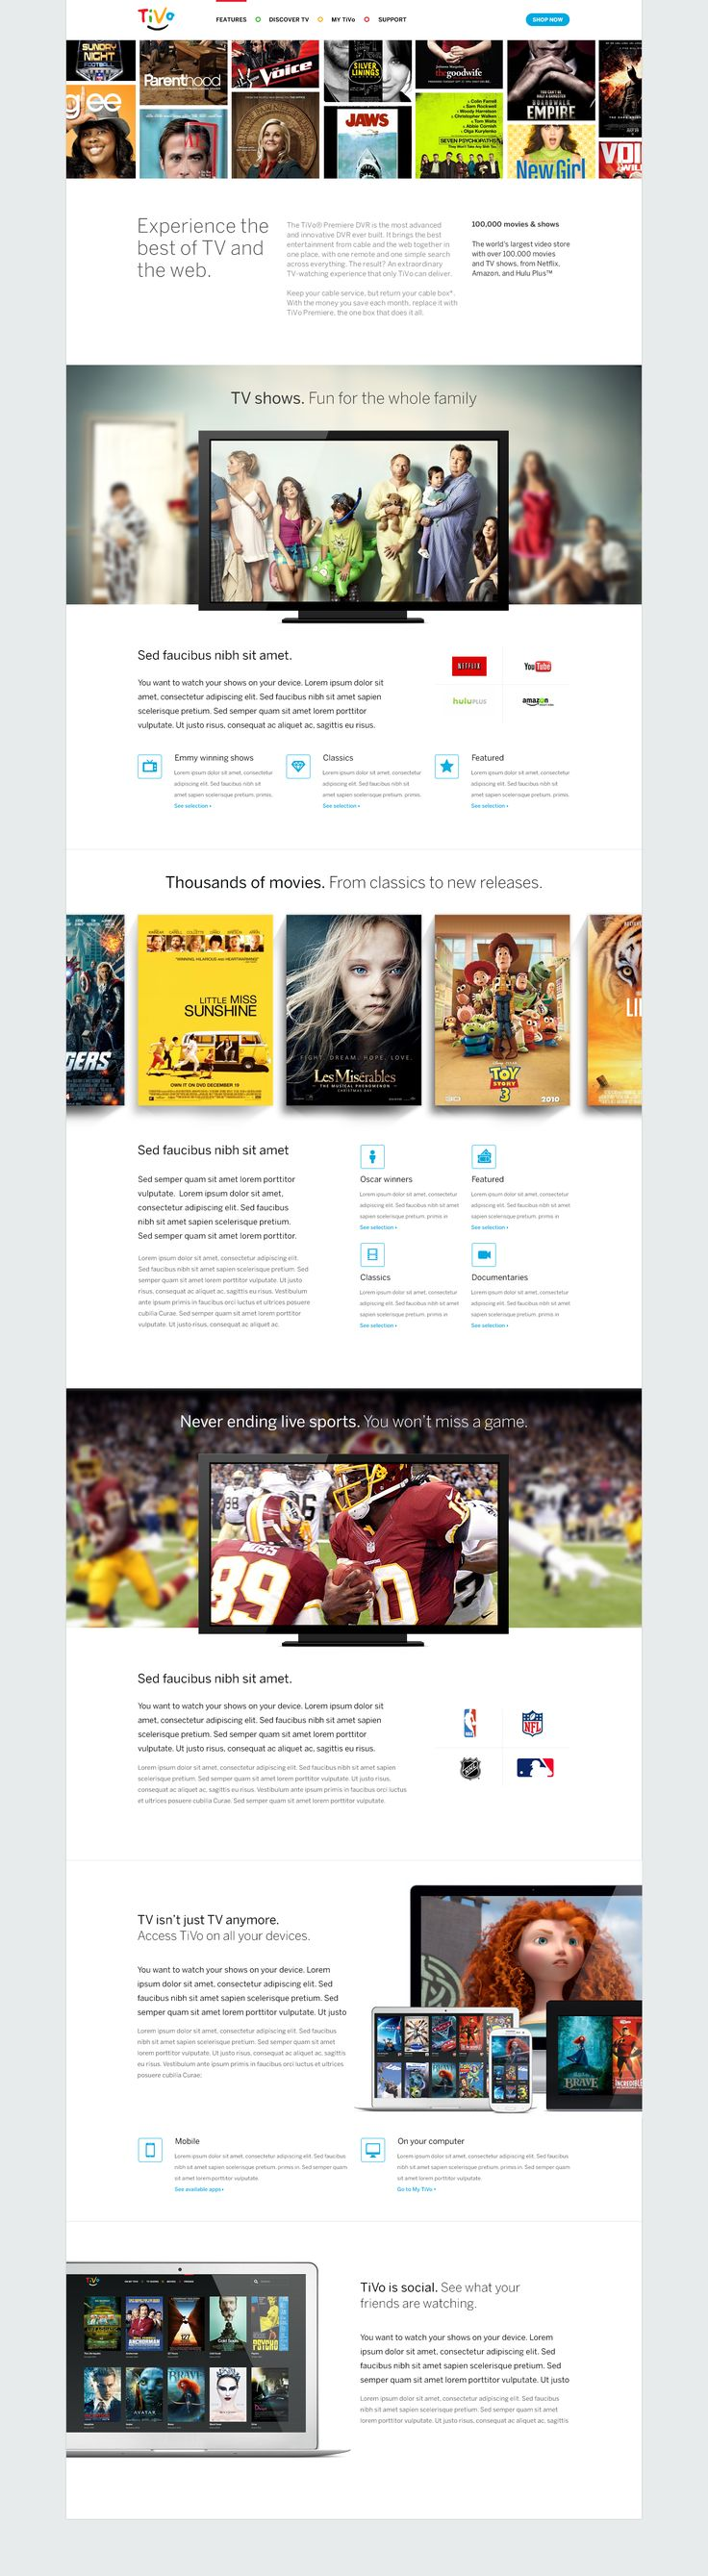 Dribbble - TiVo_FEATURES_10ht.png by Haraldur Thorleifsson